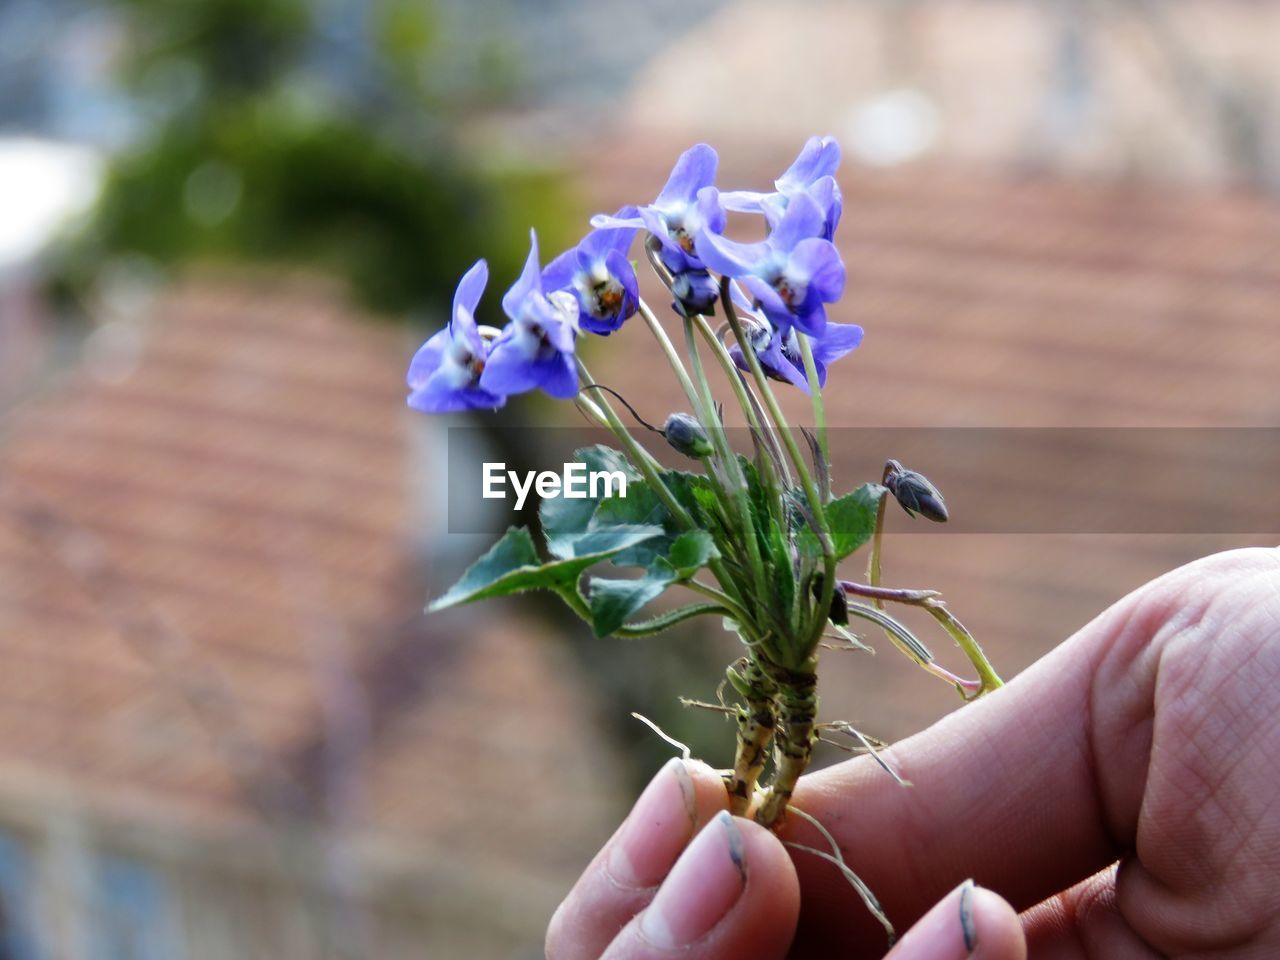 human hand, hand, human body part, flower, flowering plant, real people, plant, body part, holding, close-up, focus on foreground, nature, unrecognizable person, day, human finger, finger, fragility, vulnerability, one person, beauty in nature, outdoors, purple, flower head